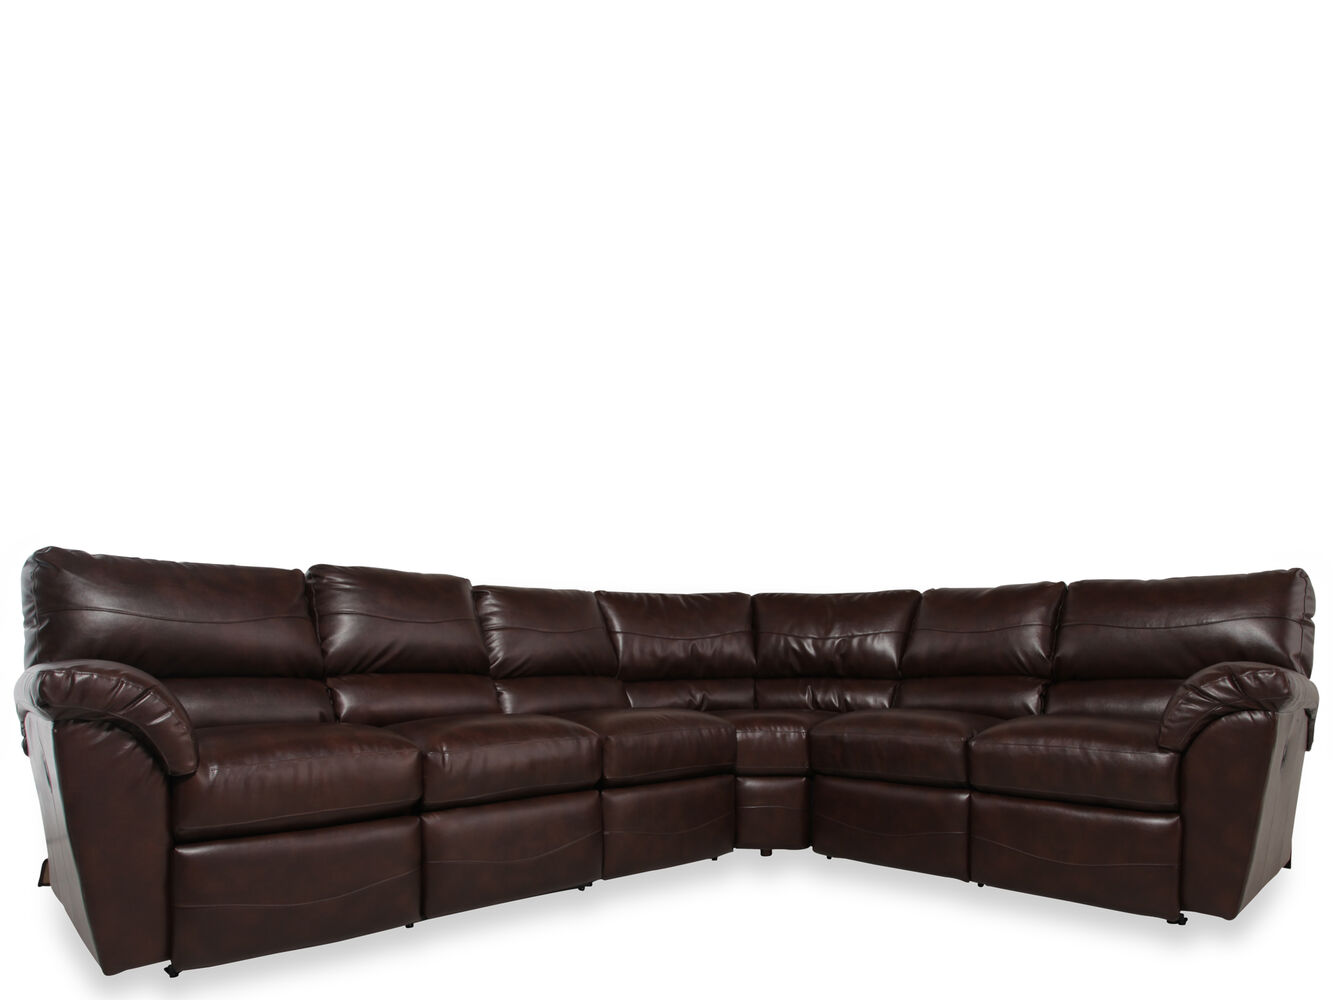 Three piece contemporary 103quot dual recliner sectional in for Sectional sofa 103